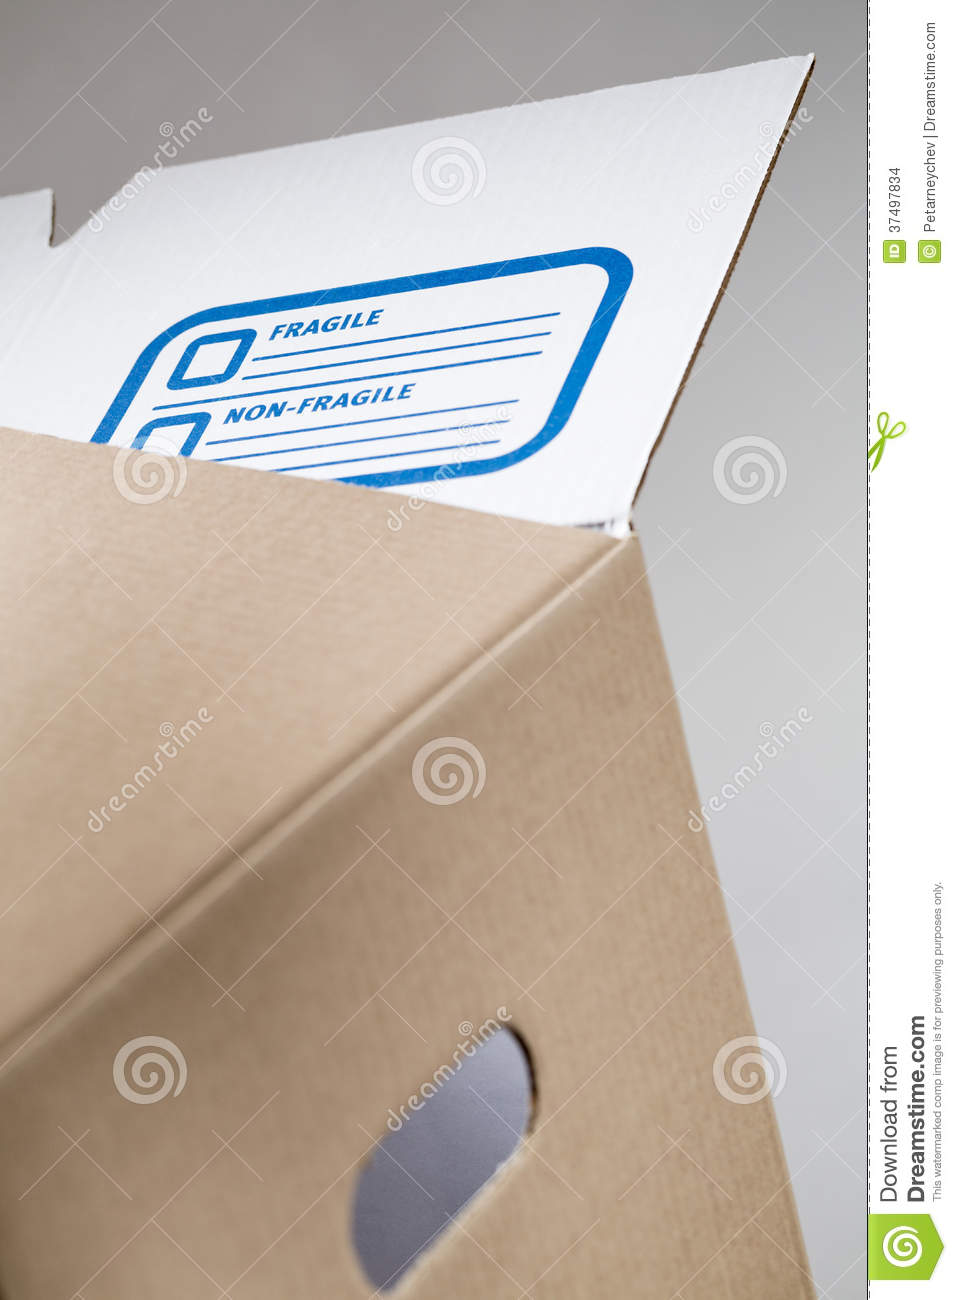 Moving Box with Fragile Label